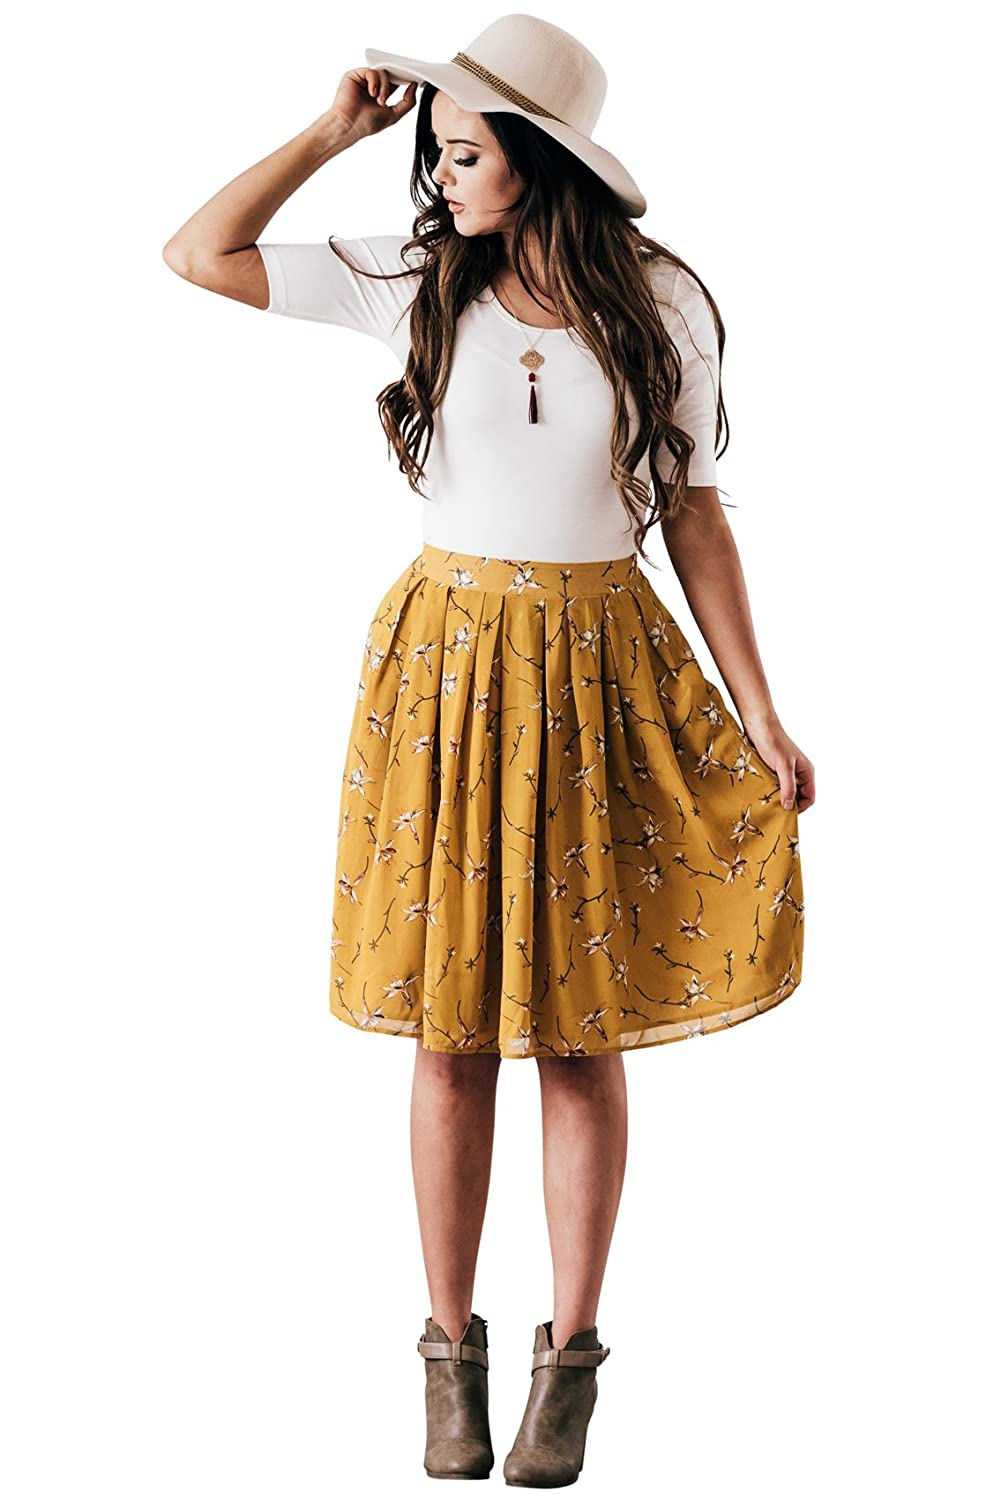 b3f684887abc Mikarose Knee-Length Chiffon Modest Skirt in Mustard Yellow w/Floral Print